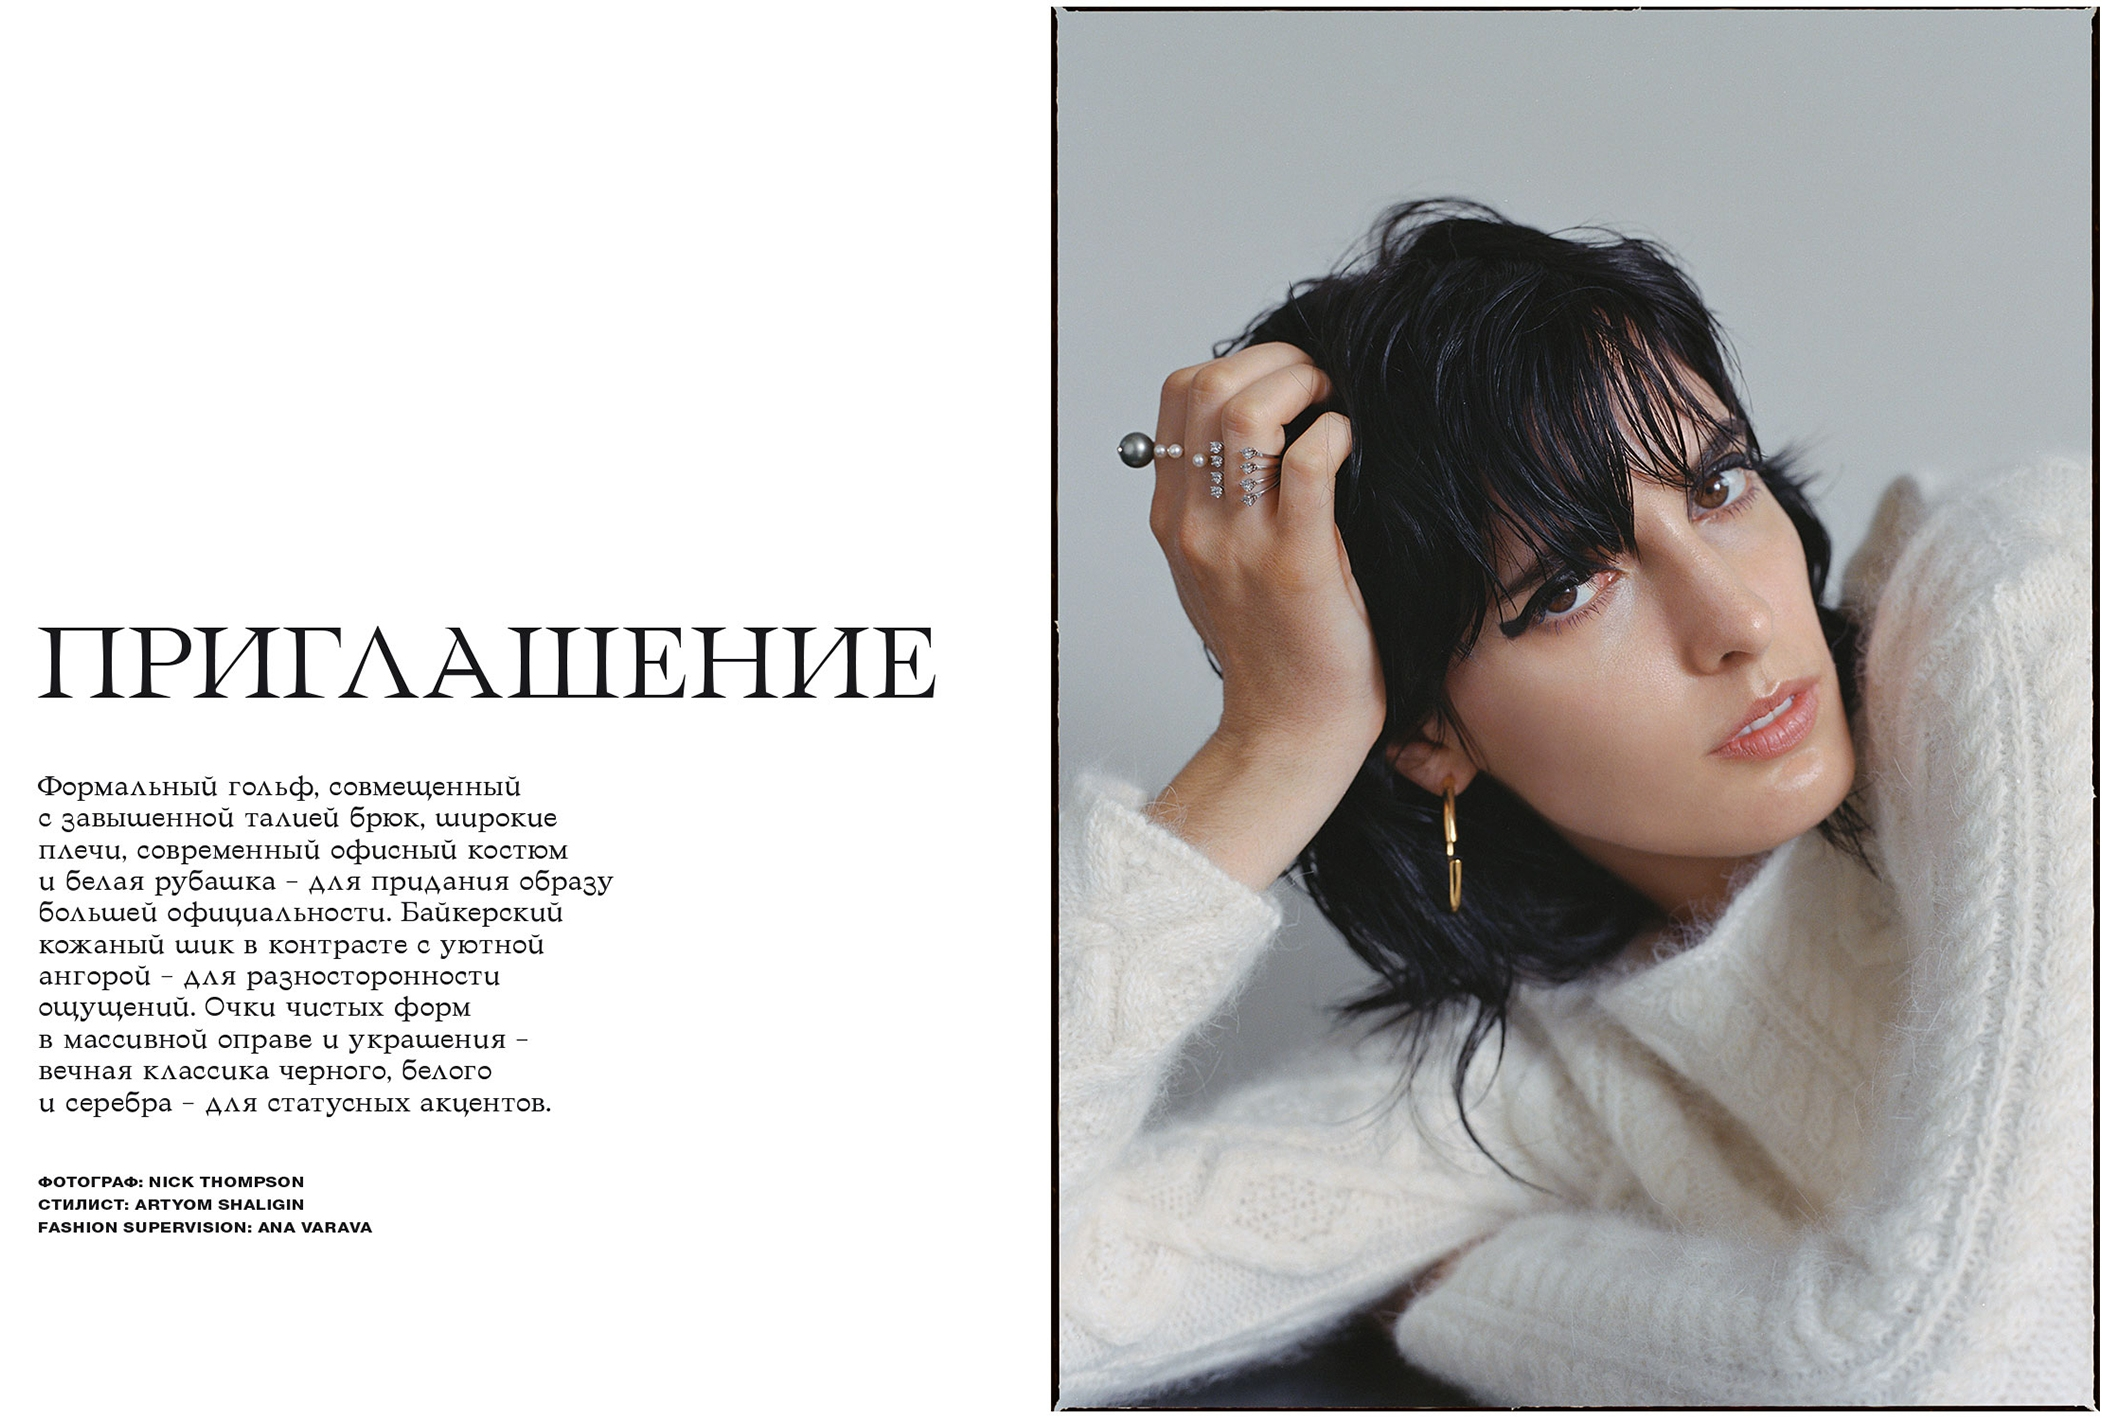 L'Officiel Ukraine, Fashion Photography, Fashion jewellery, Fashion Film, Nick Thompson Photography, L'Officiel Ukraine